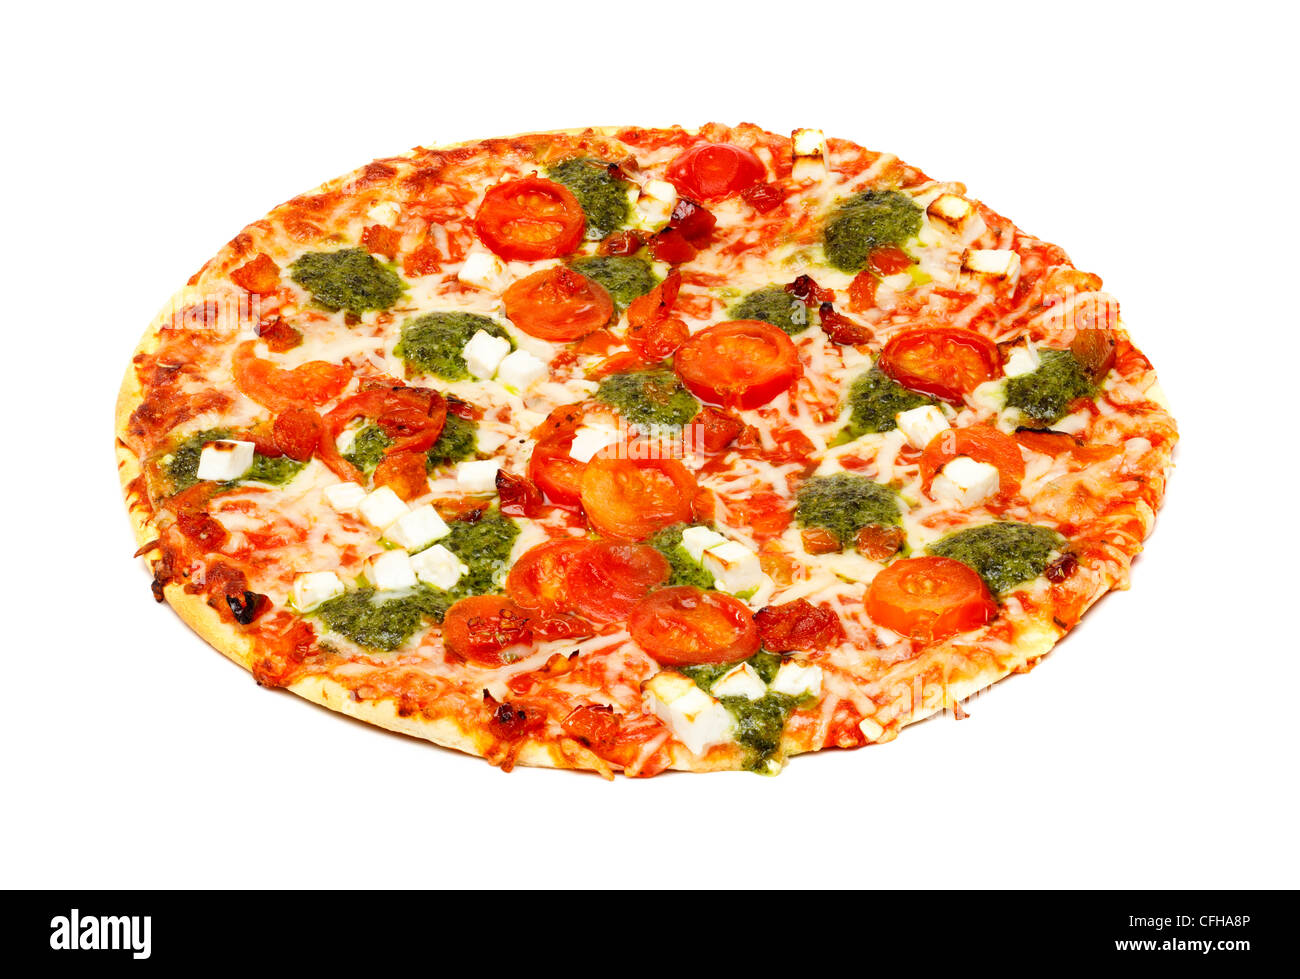 Cheese and tomato pizza on white background - Stock Image